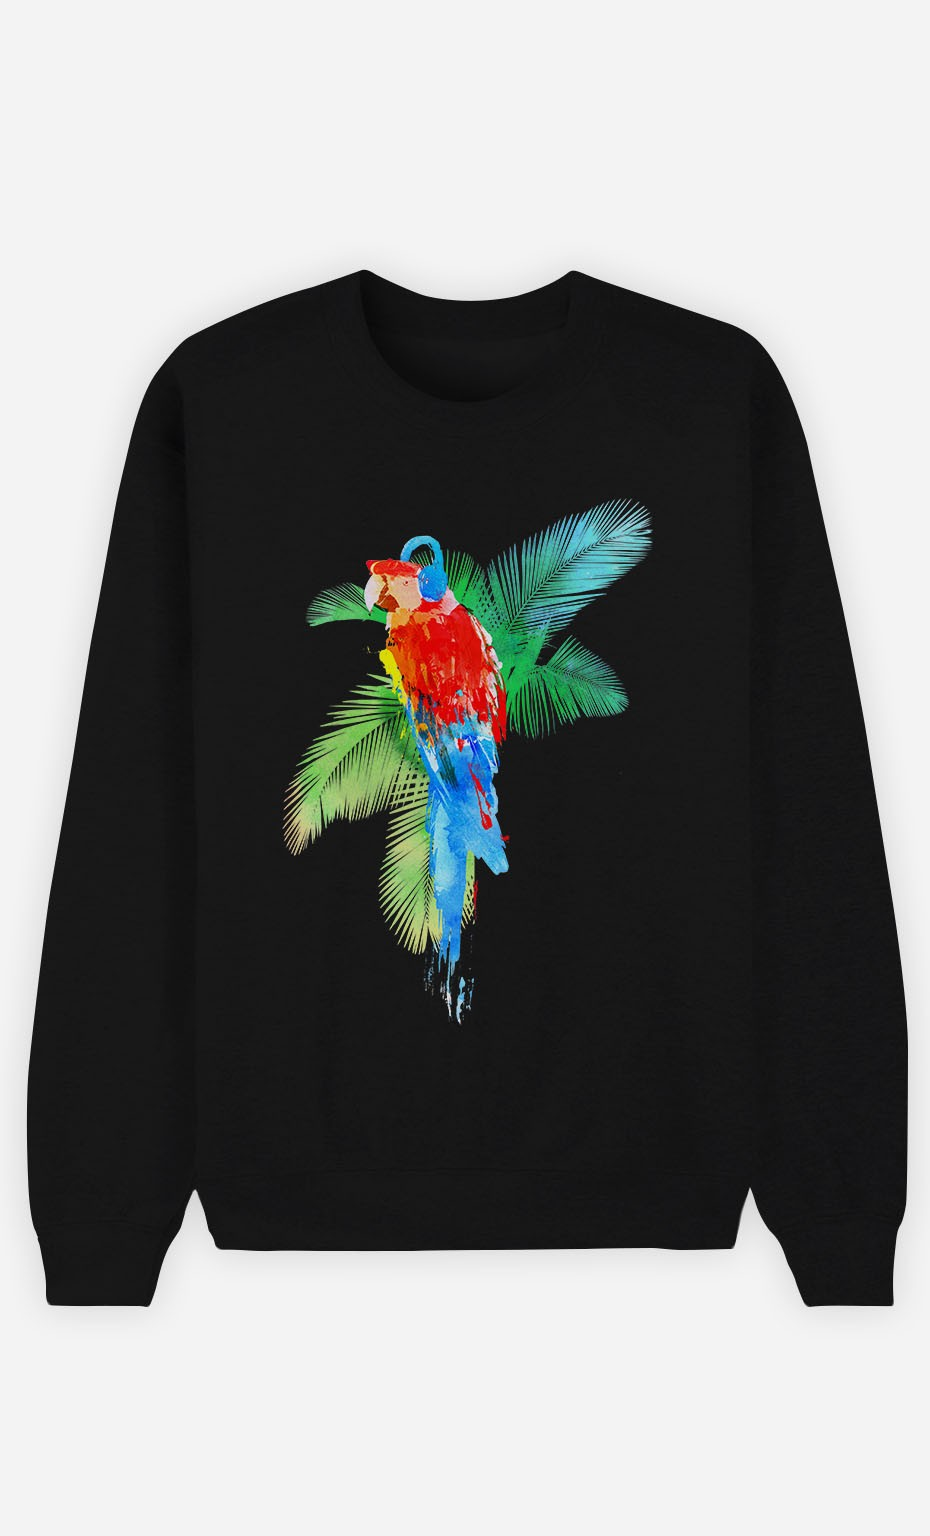 Black Sweatshirt Parrot Party